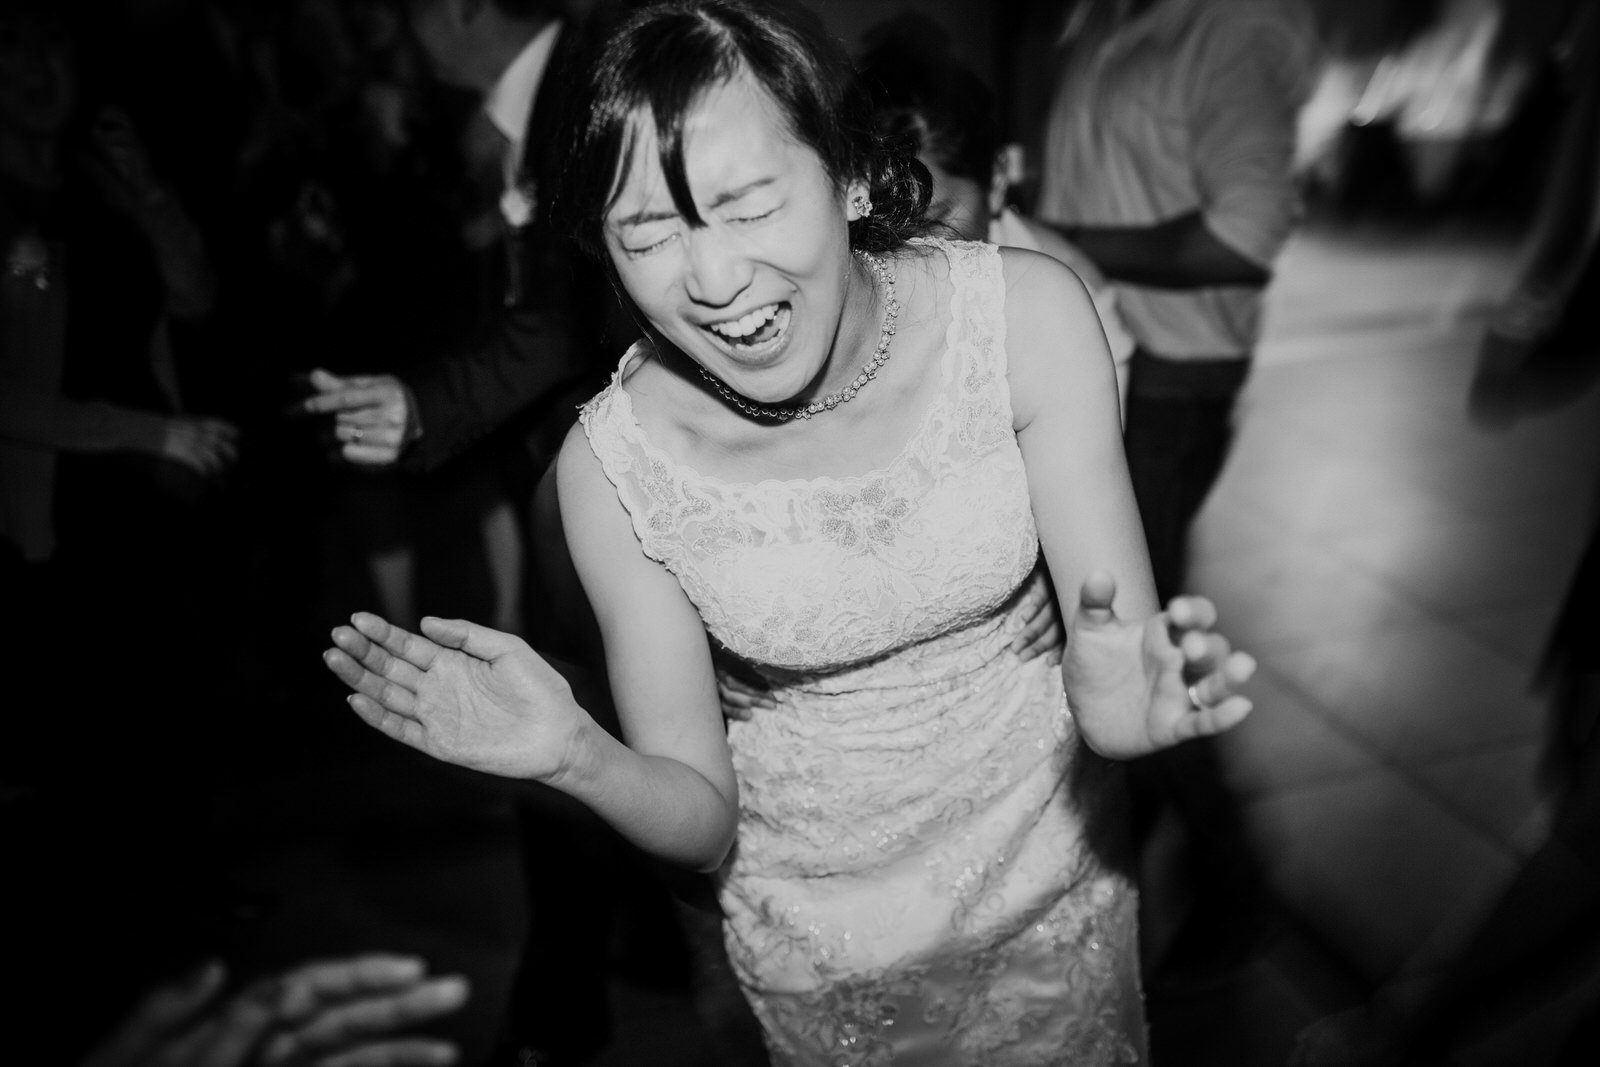 The bride laughs during the dancing at her reception